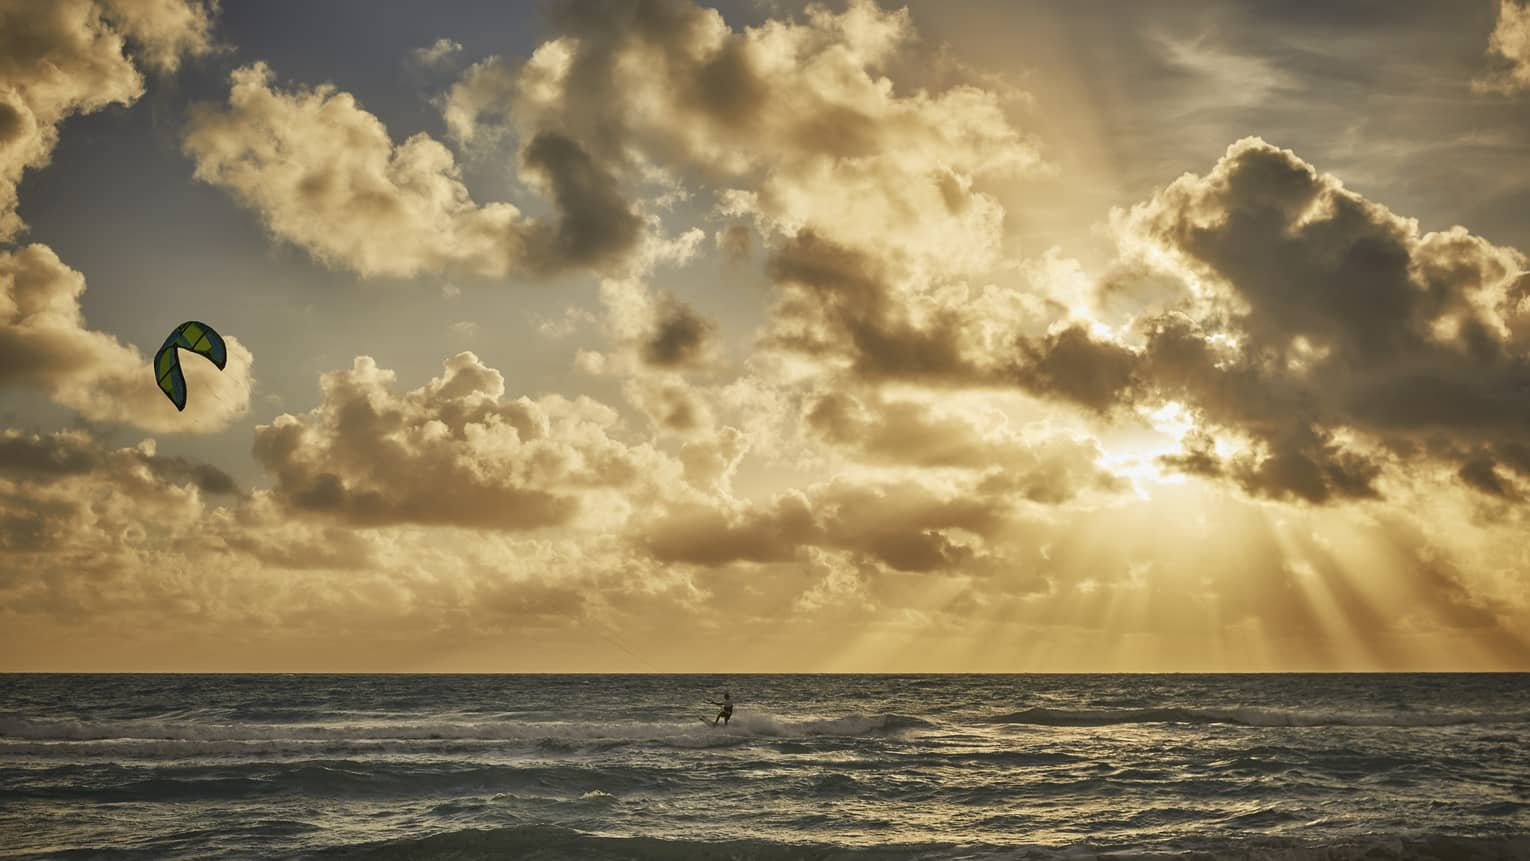 A four seasons guest windsurfs into the sunset over the ocean